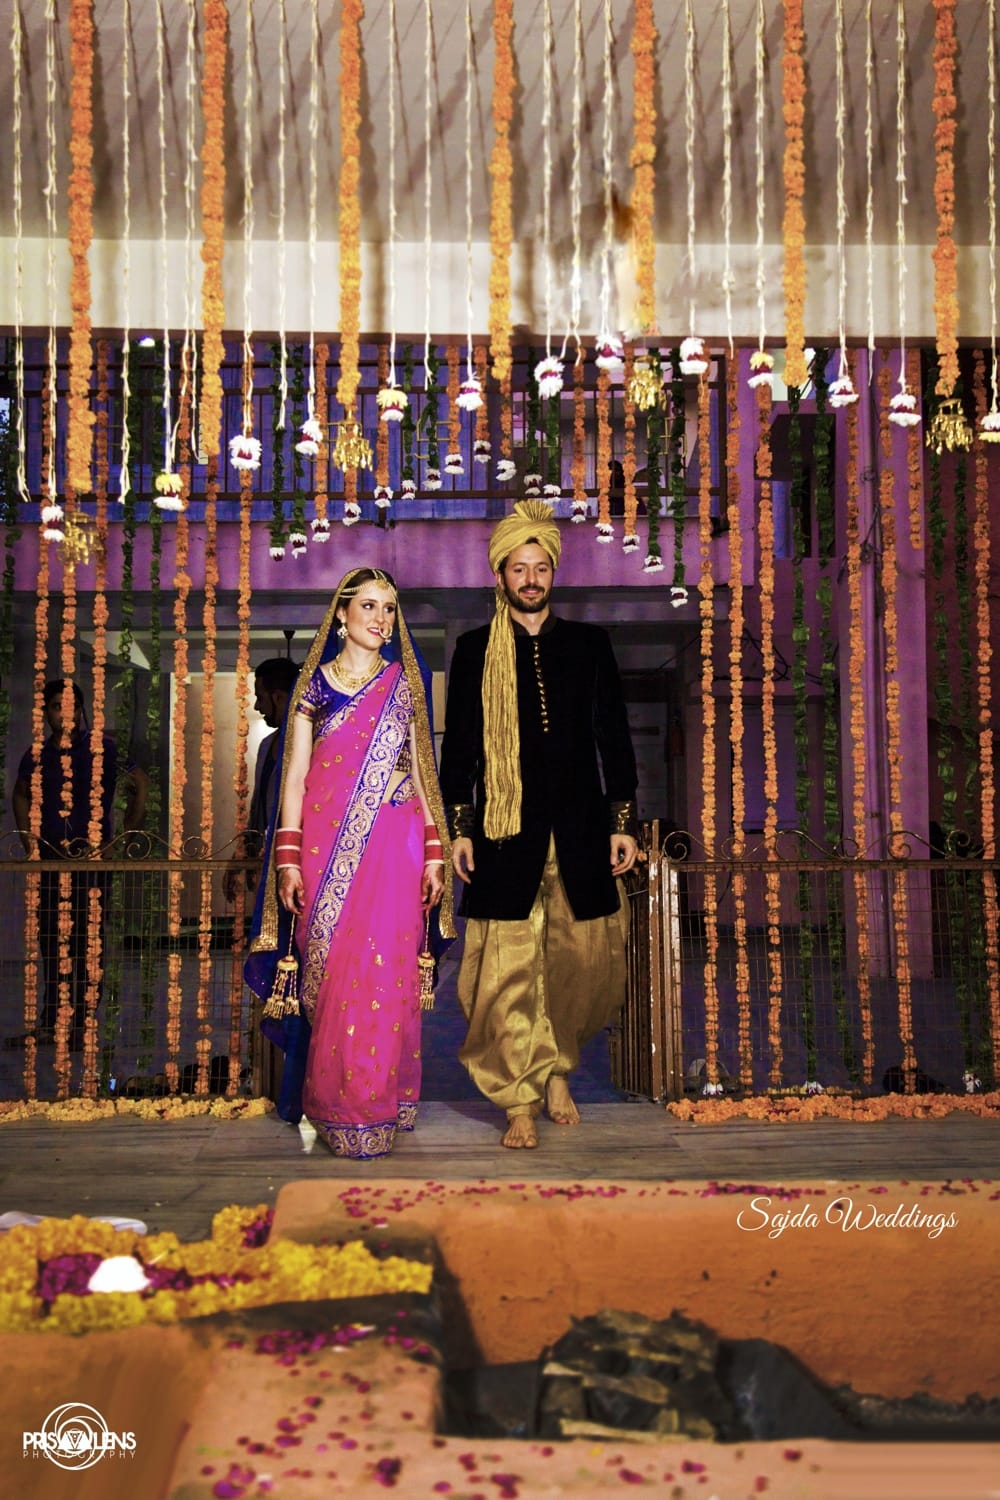 couple entry for wedding:sajda wedding planning and choreography services